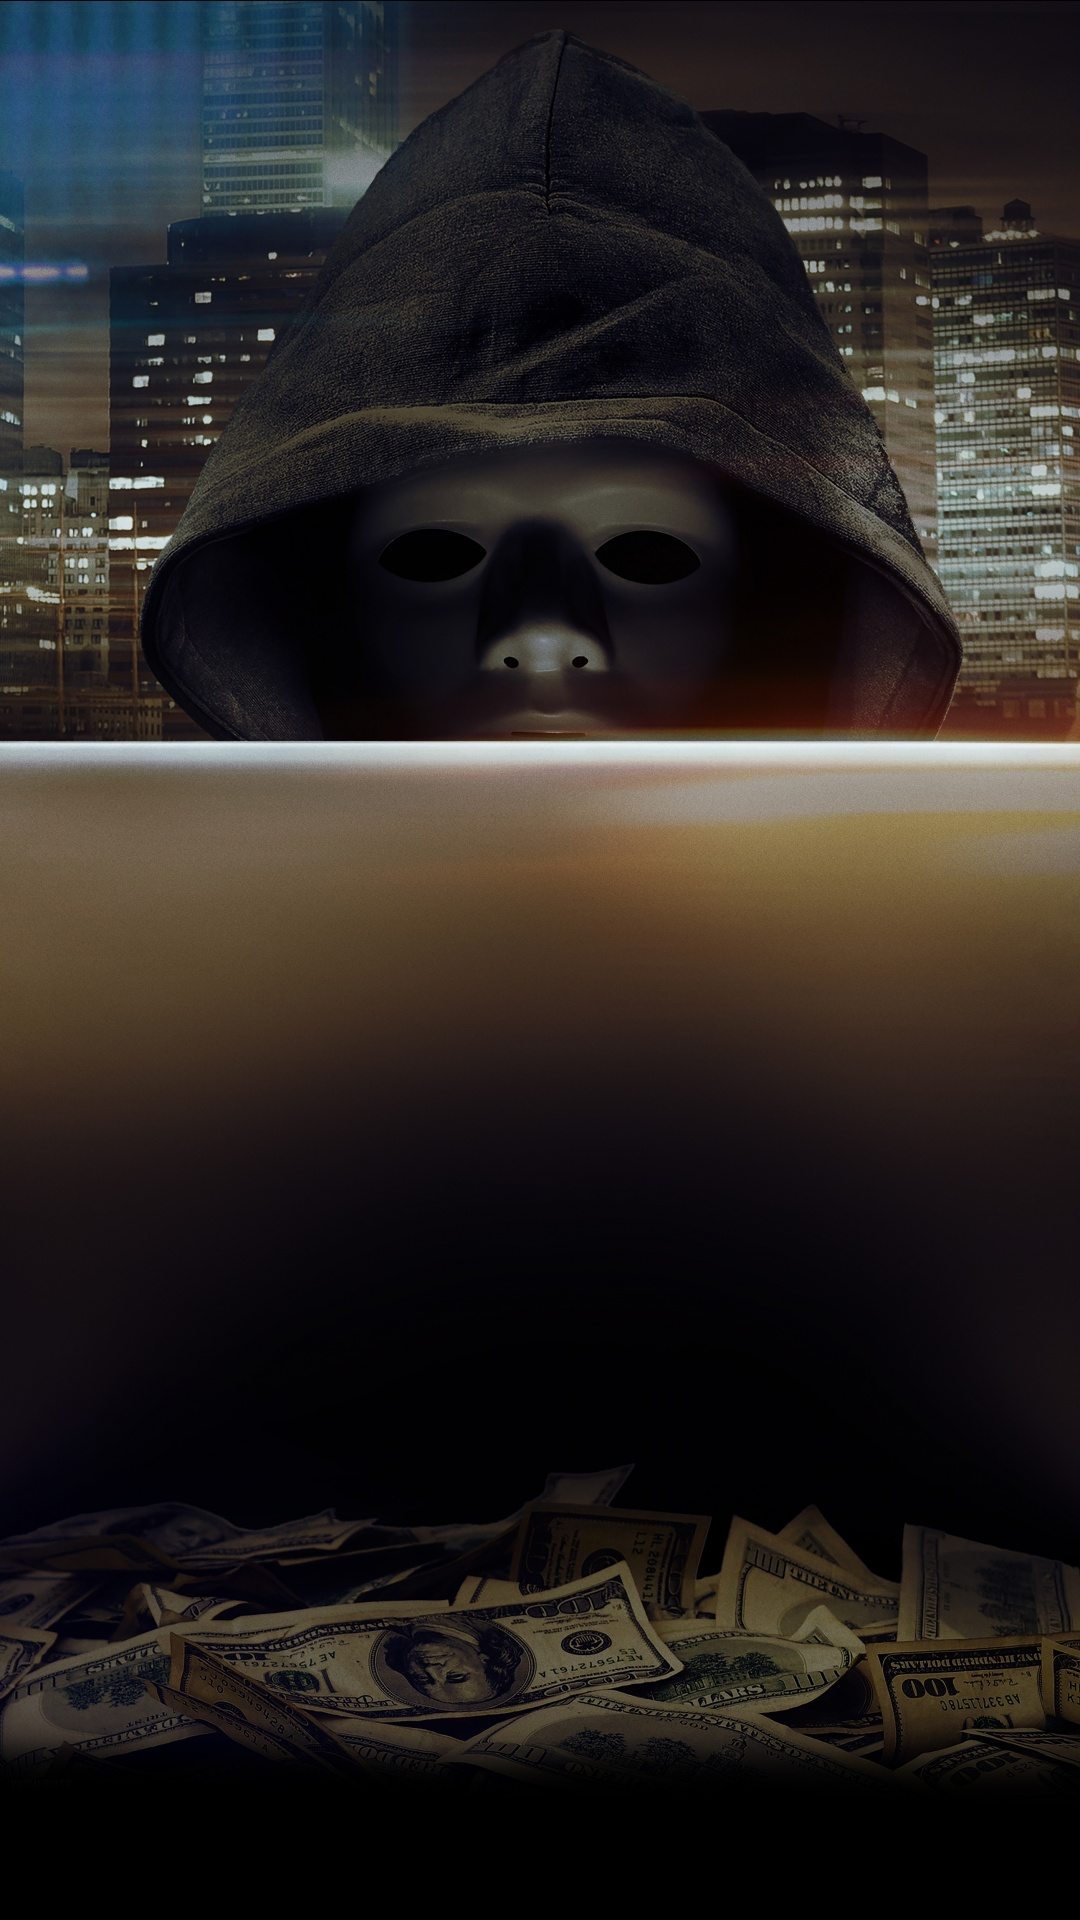 hacker hoodie anonymous laptop wallpapers technology currency 4k 4kwallpapers